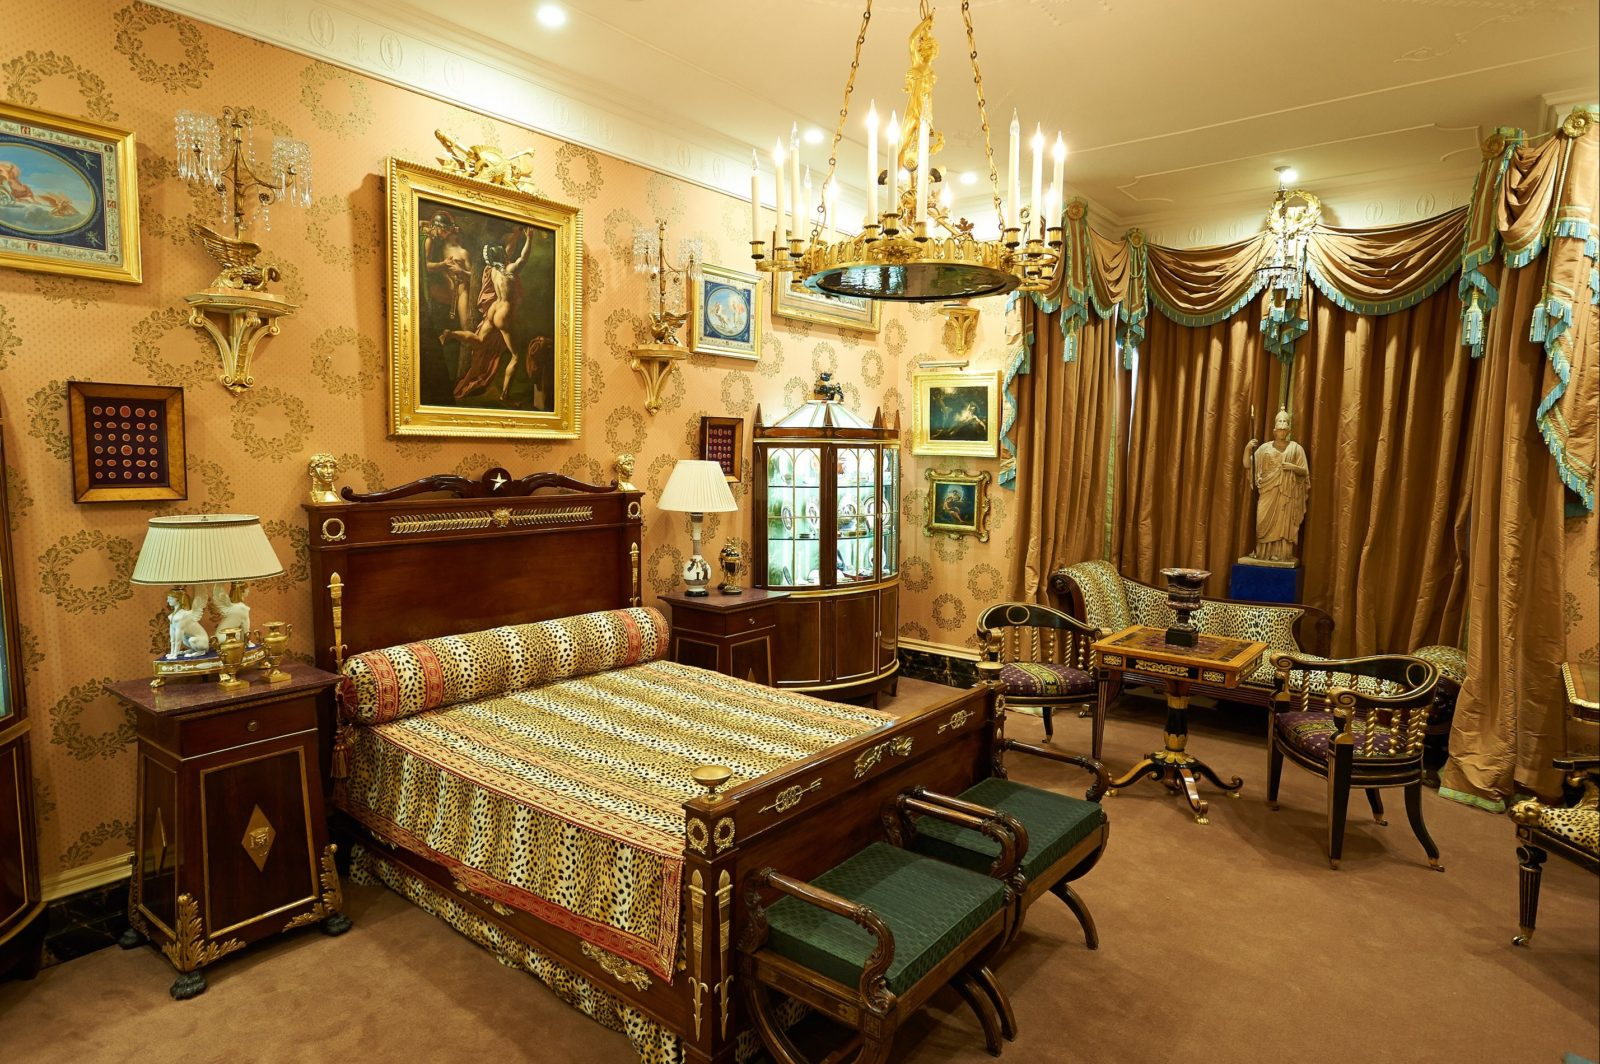 David Roche's bedroom